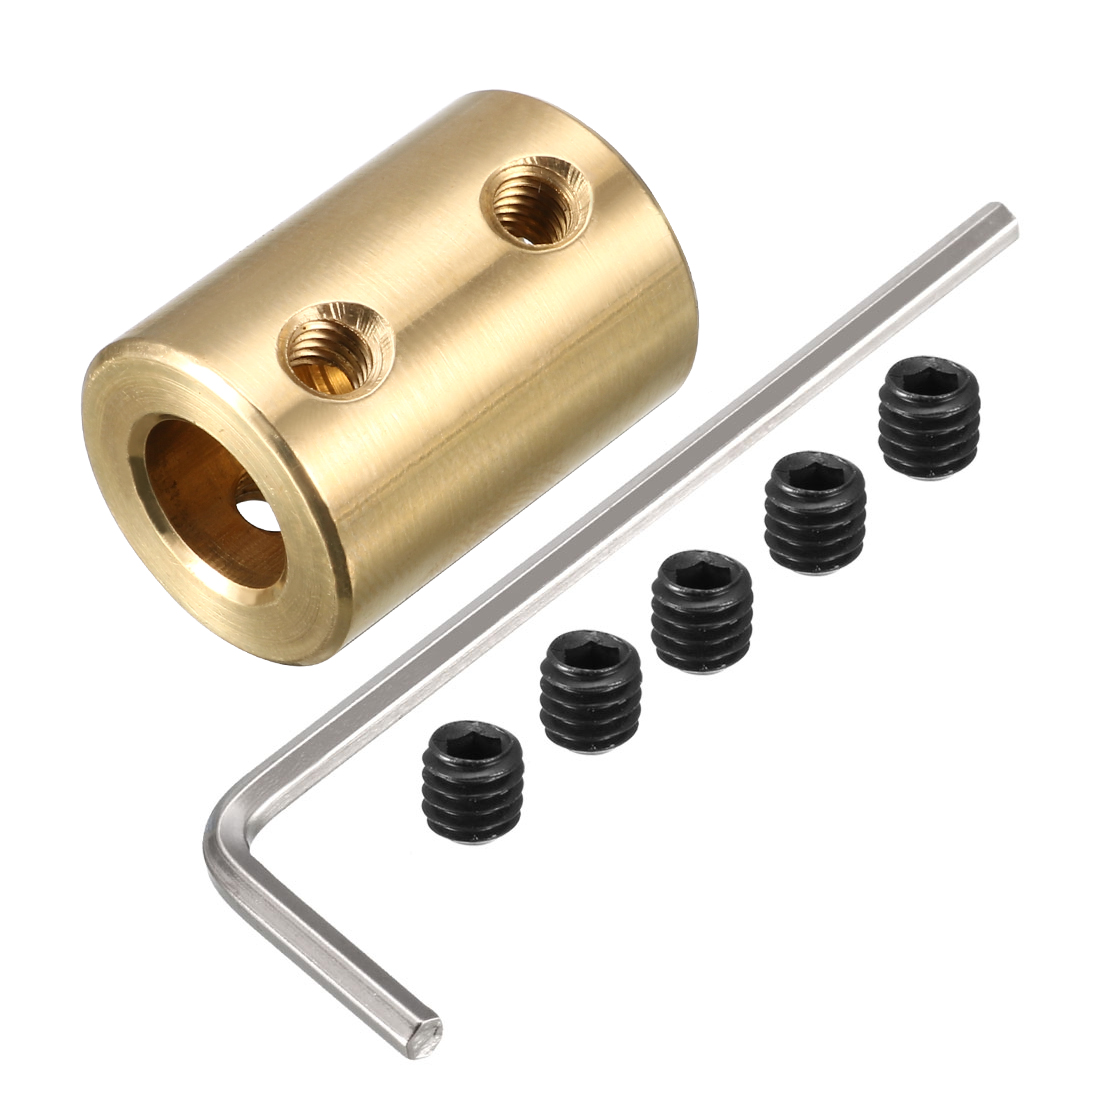 5mm to 8mm Copper DIY Motor Shaft Coupling Joint Adapter for Electric Car Toy